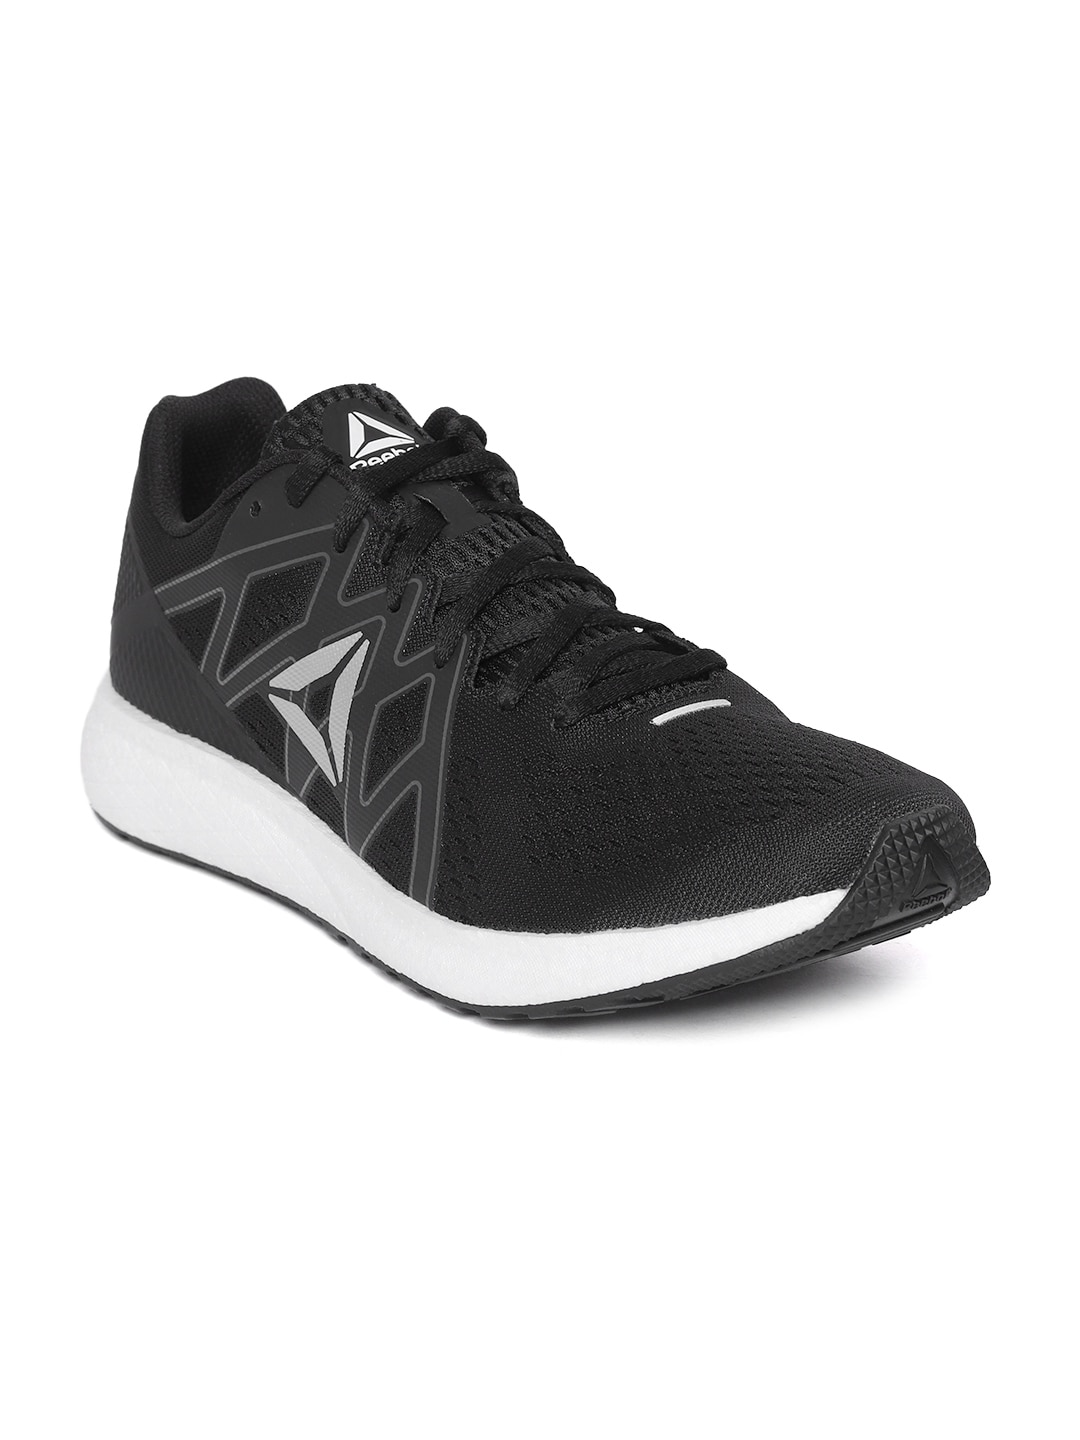 Reebok Running Shoes Sports - Buy Reebok Running Shoes Sports online in  India 2918db6cf